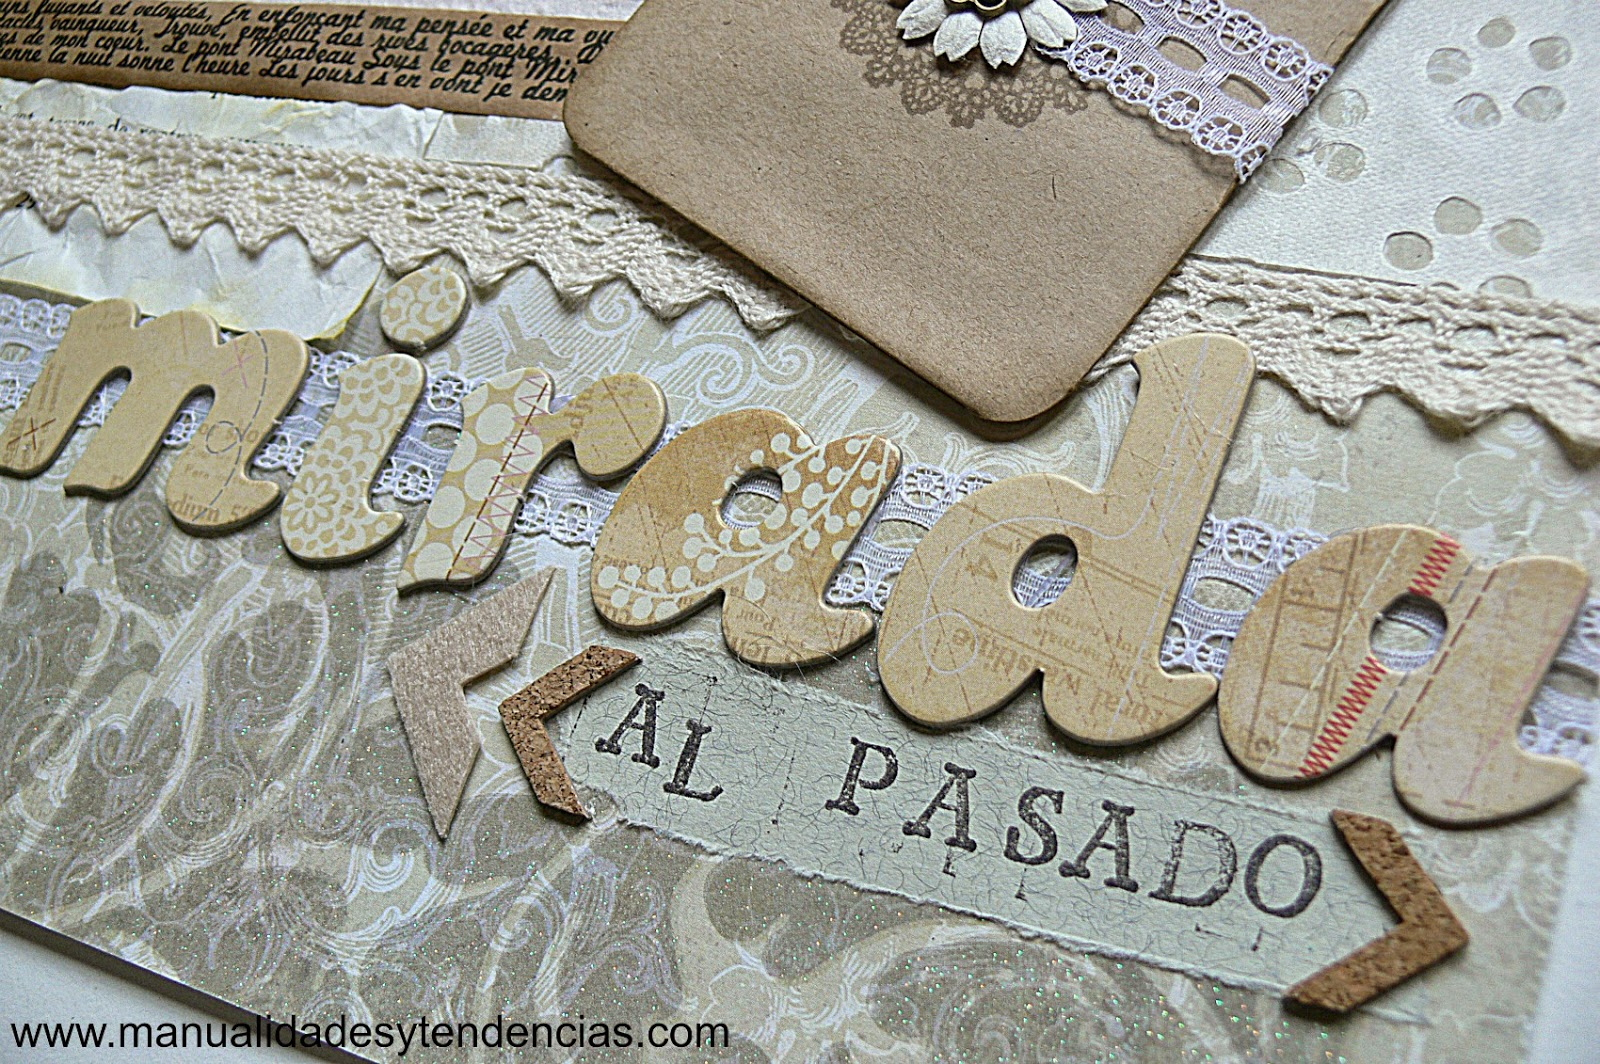 journaling scrapbooking vintage